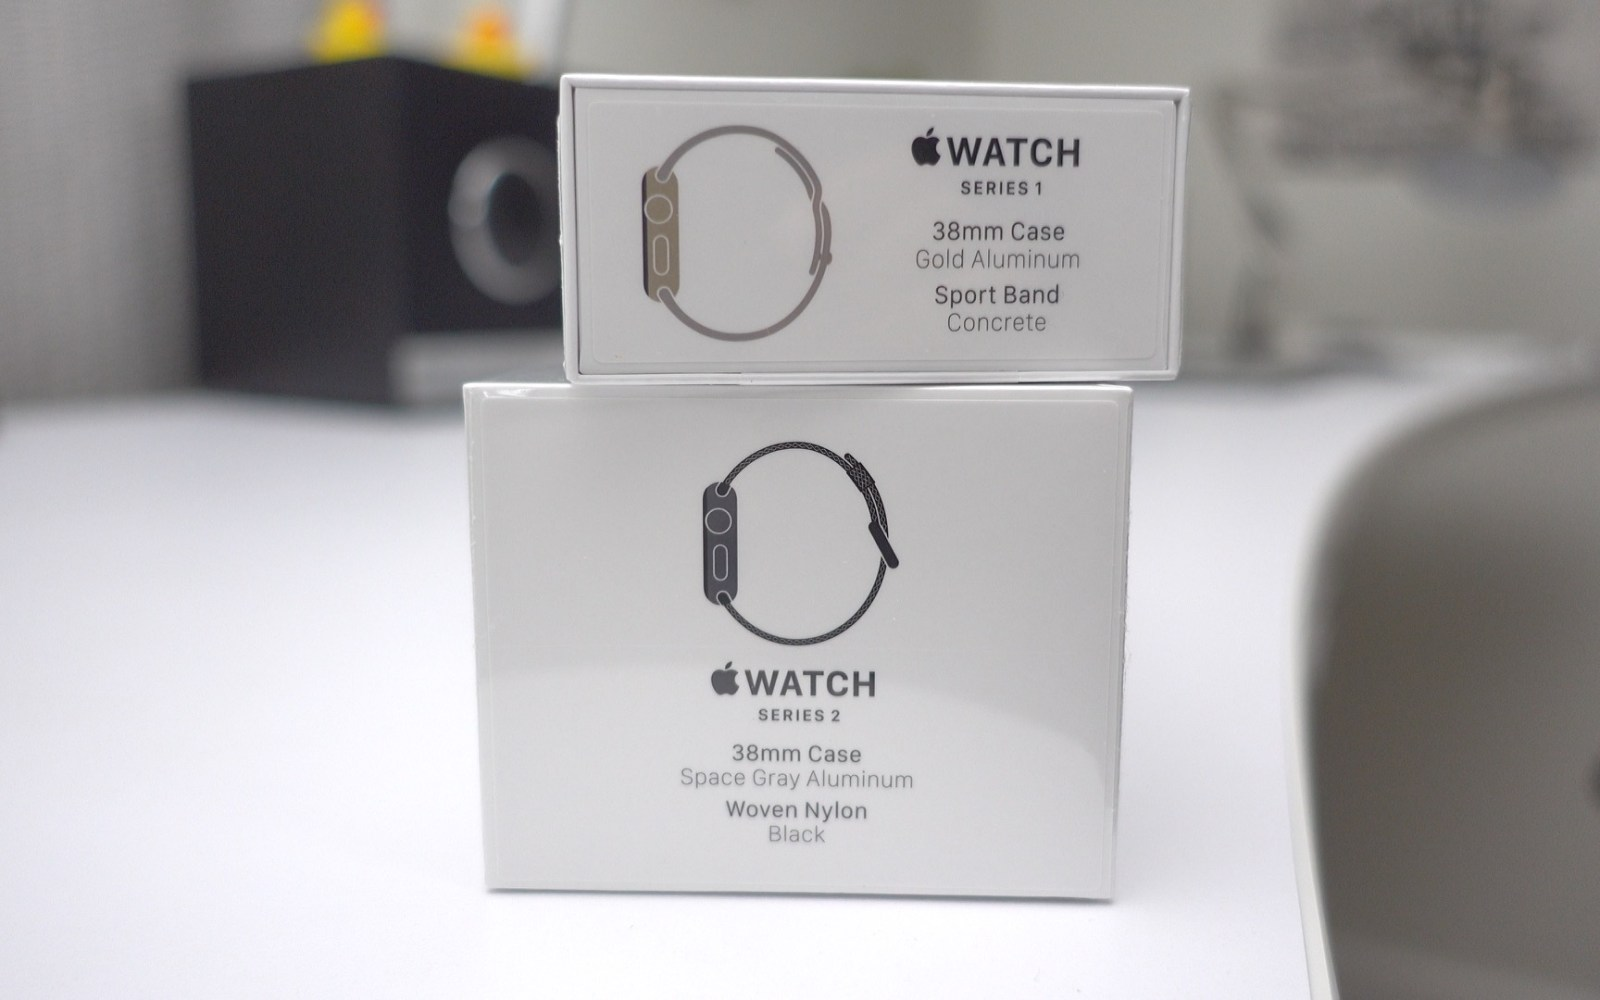 Apple Watch sales expected to drop this year despite wider availability and new models